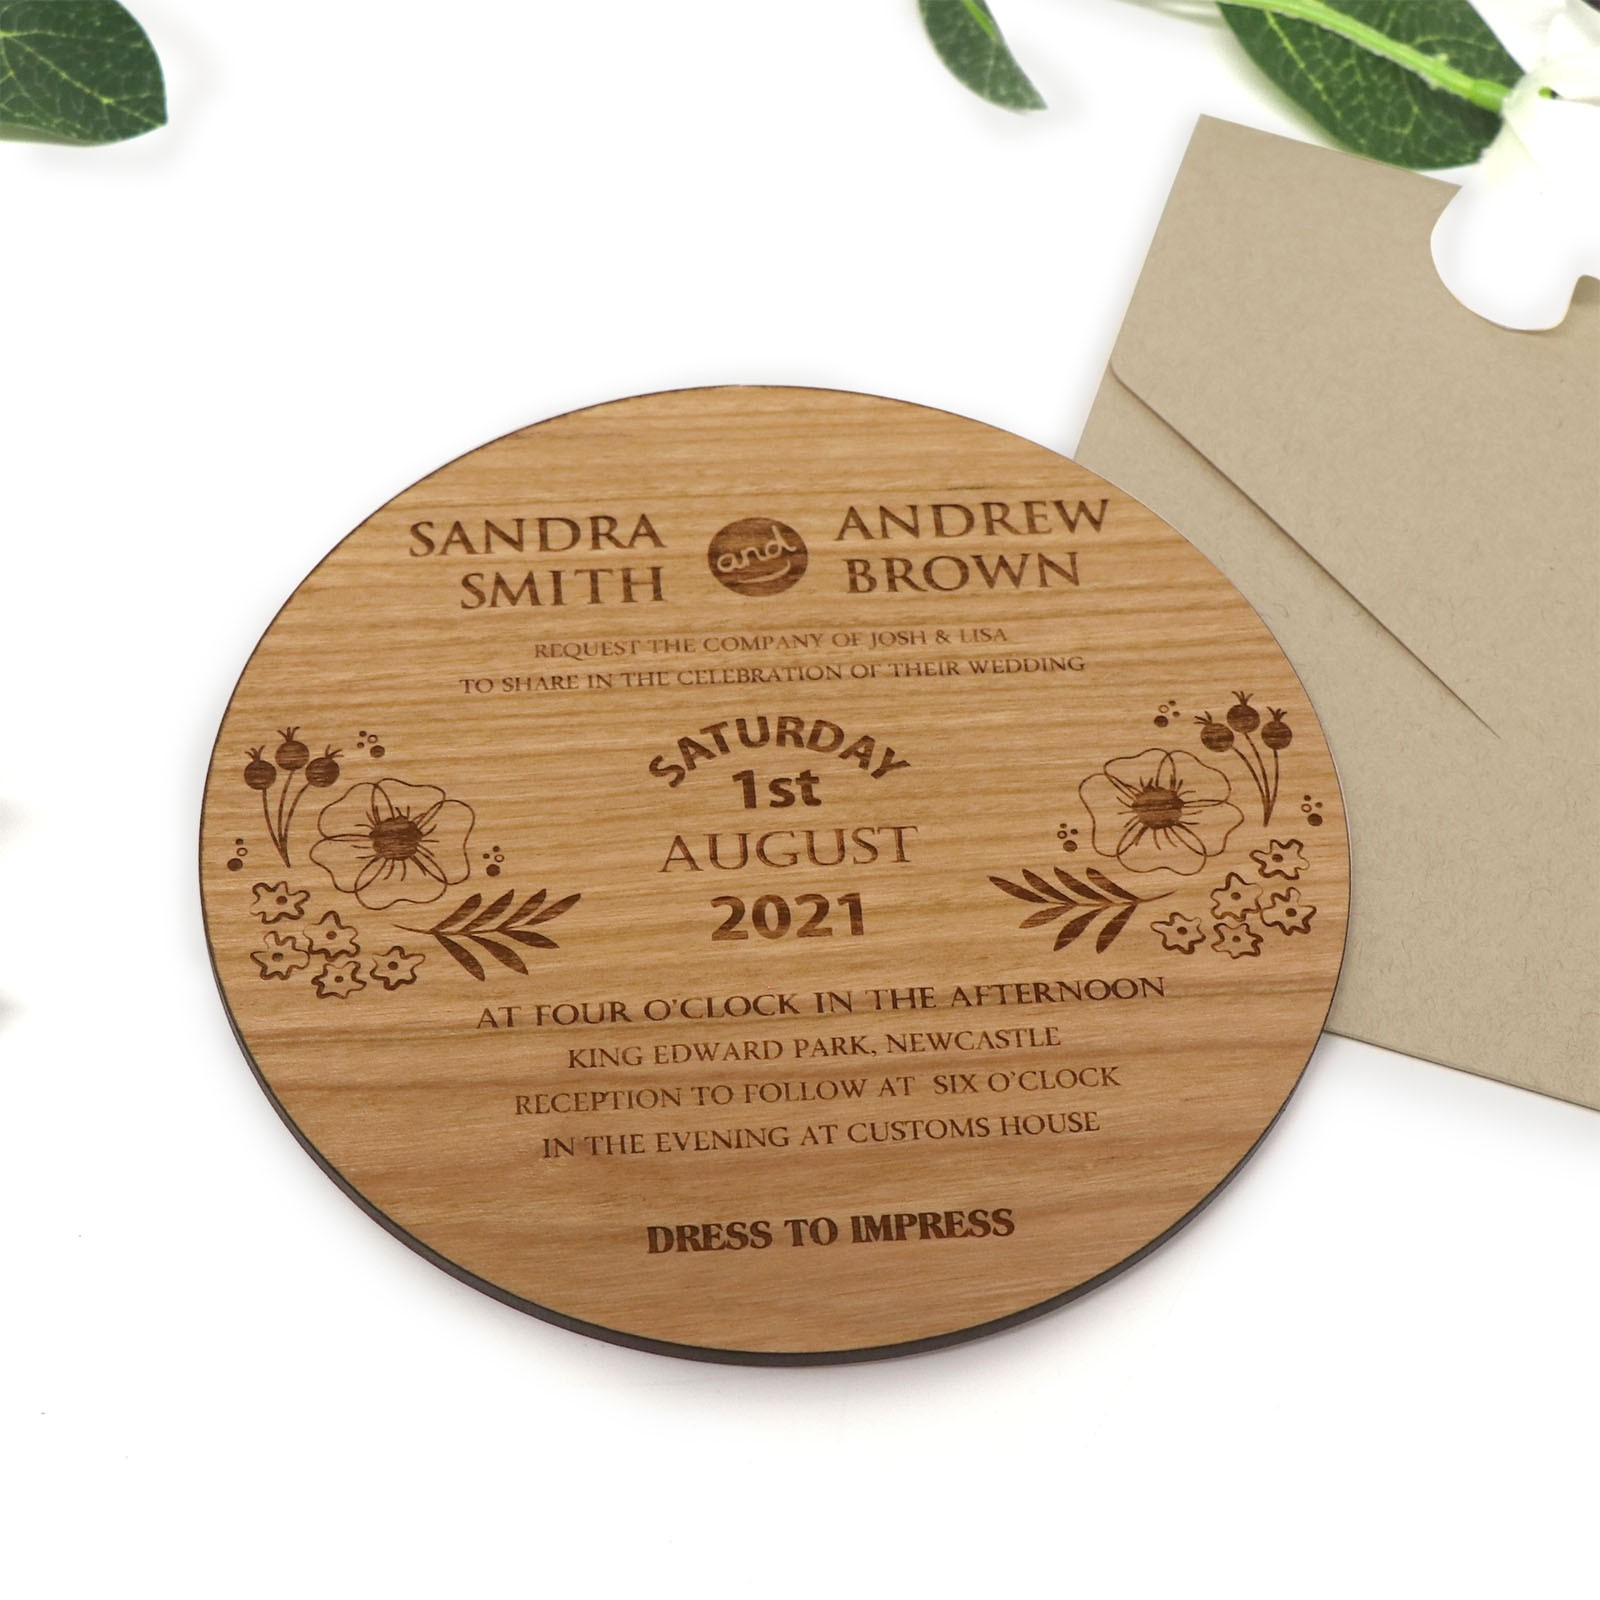 It is a special day for loved ones to gather and celebra. Engraved Wooden Wedding Invitations Large Round Timber Wedding Invites